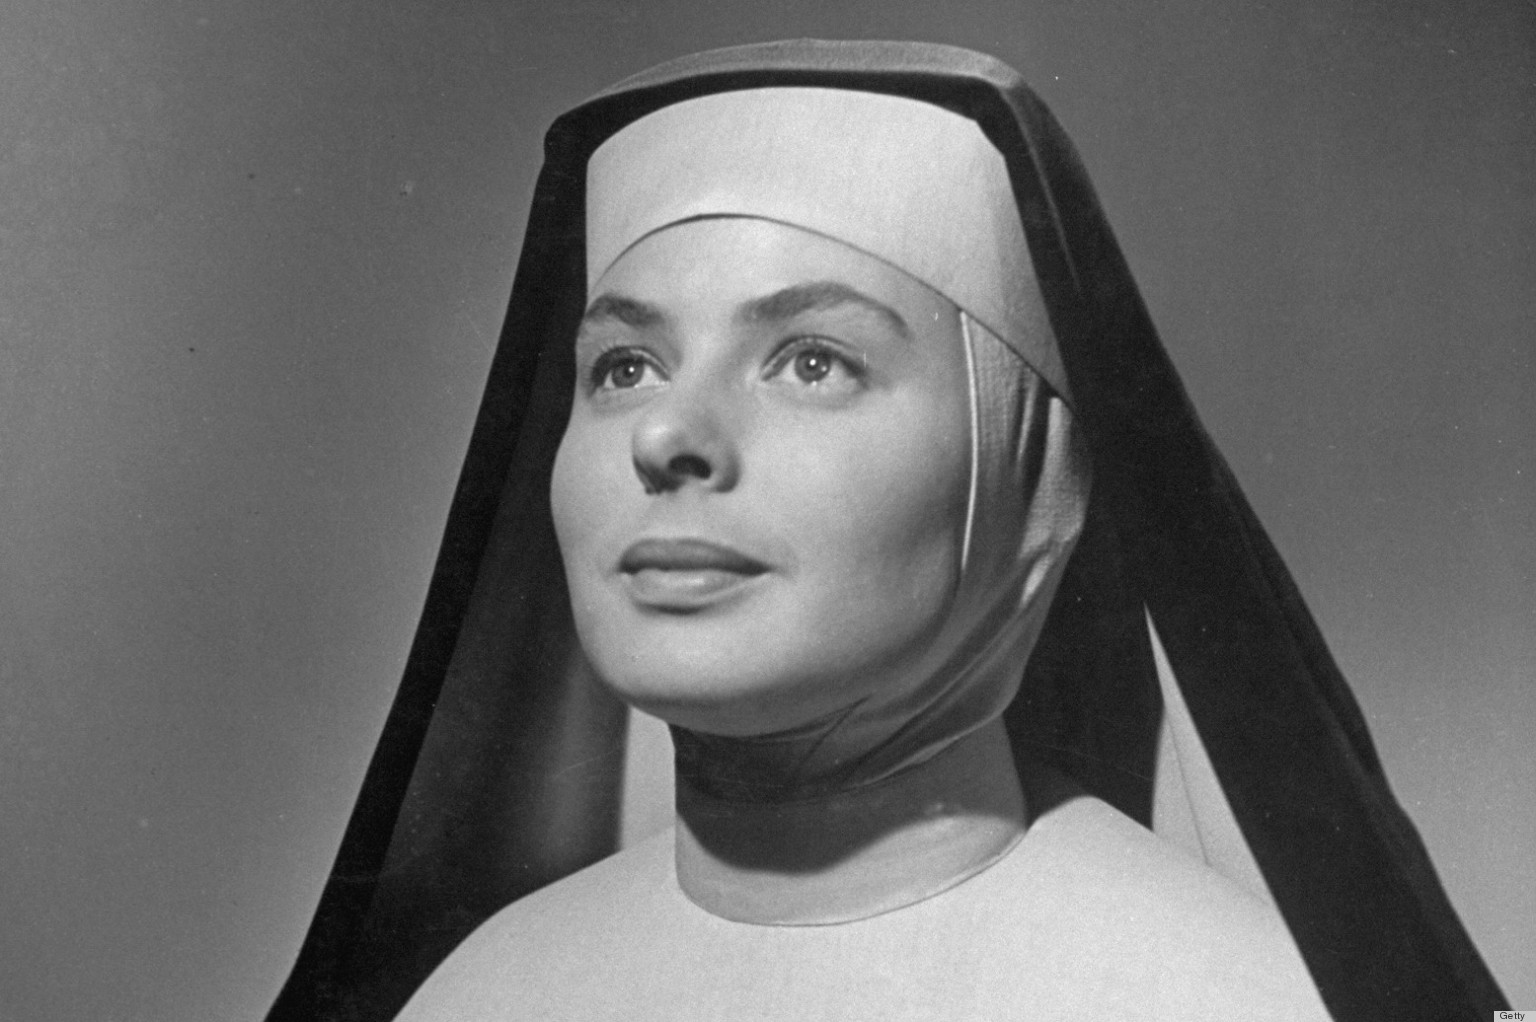 Nun Habits  How Women Of The Cloth Express Their Own Personal Style